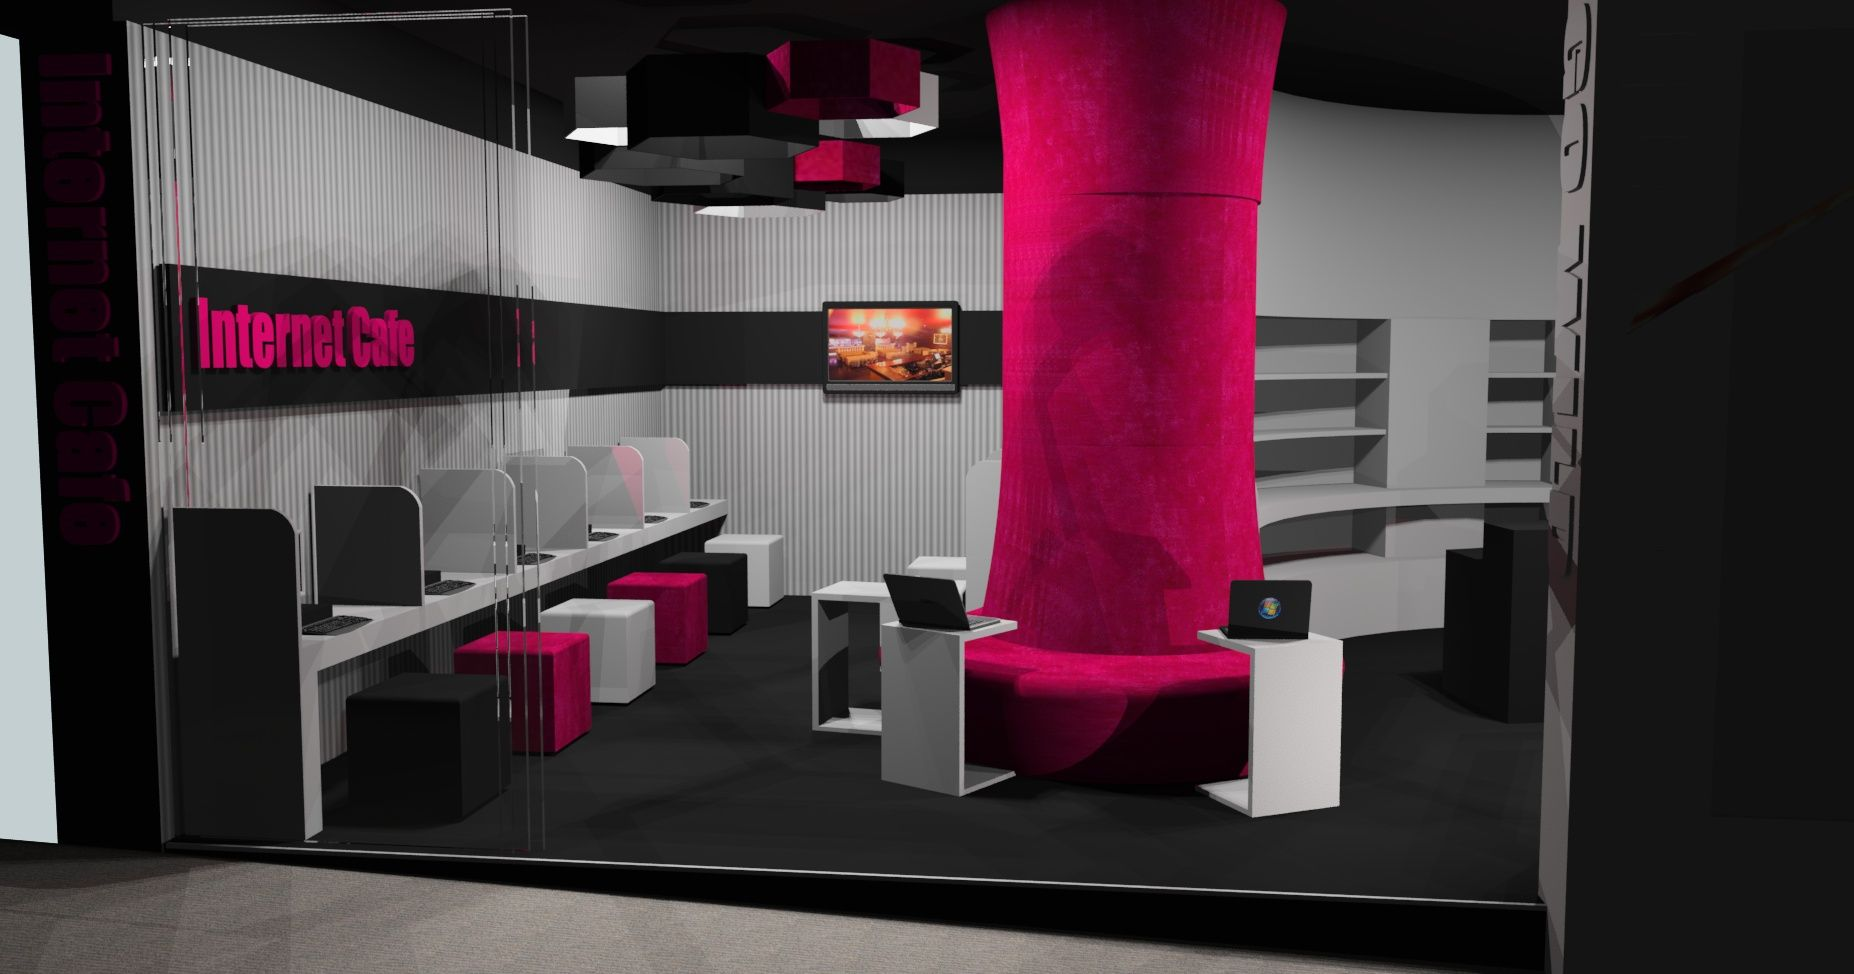 peach factory internet cafe design | 3d design work | pinterest